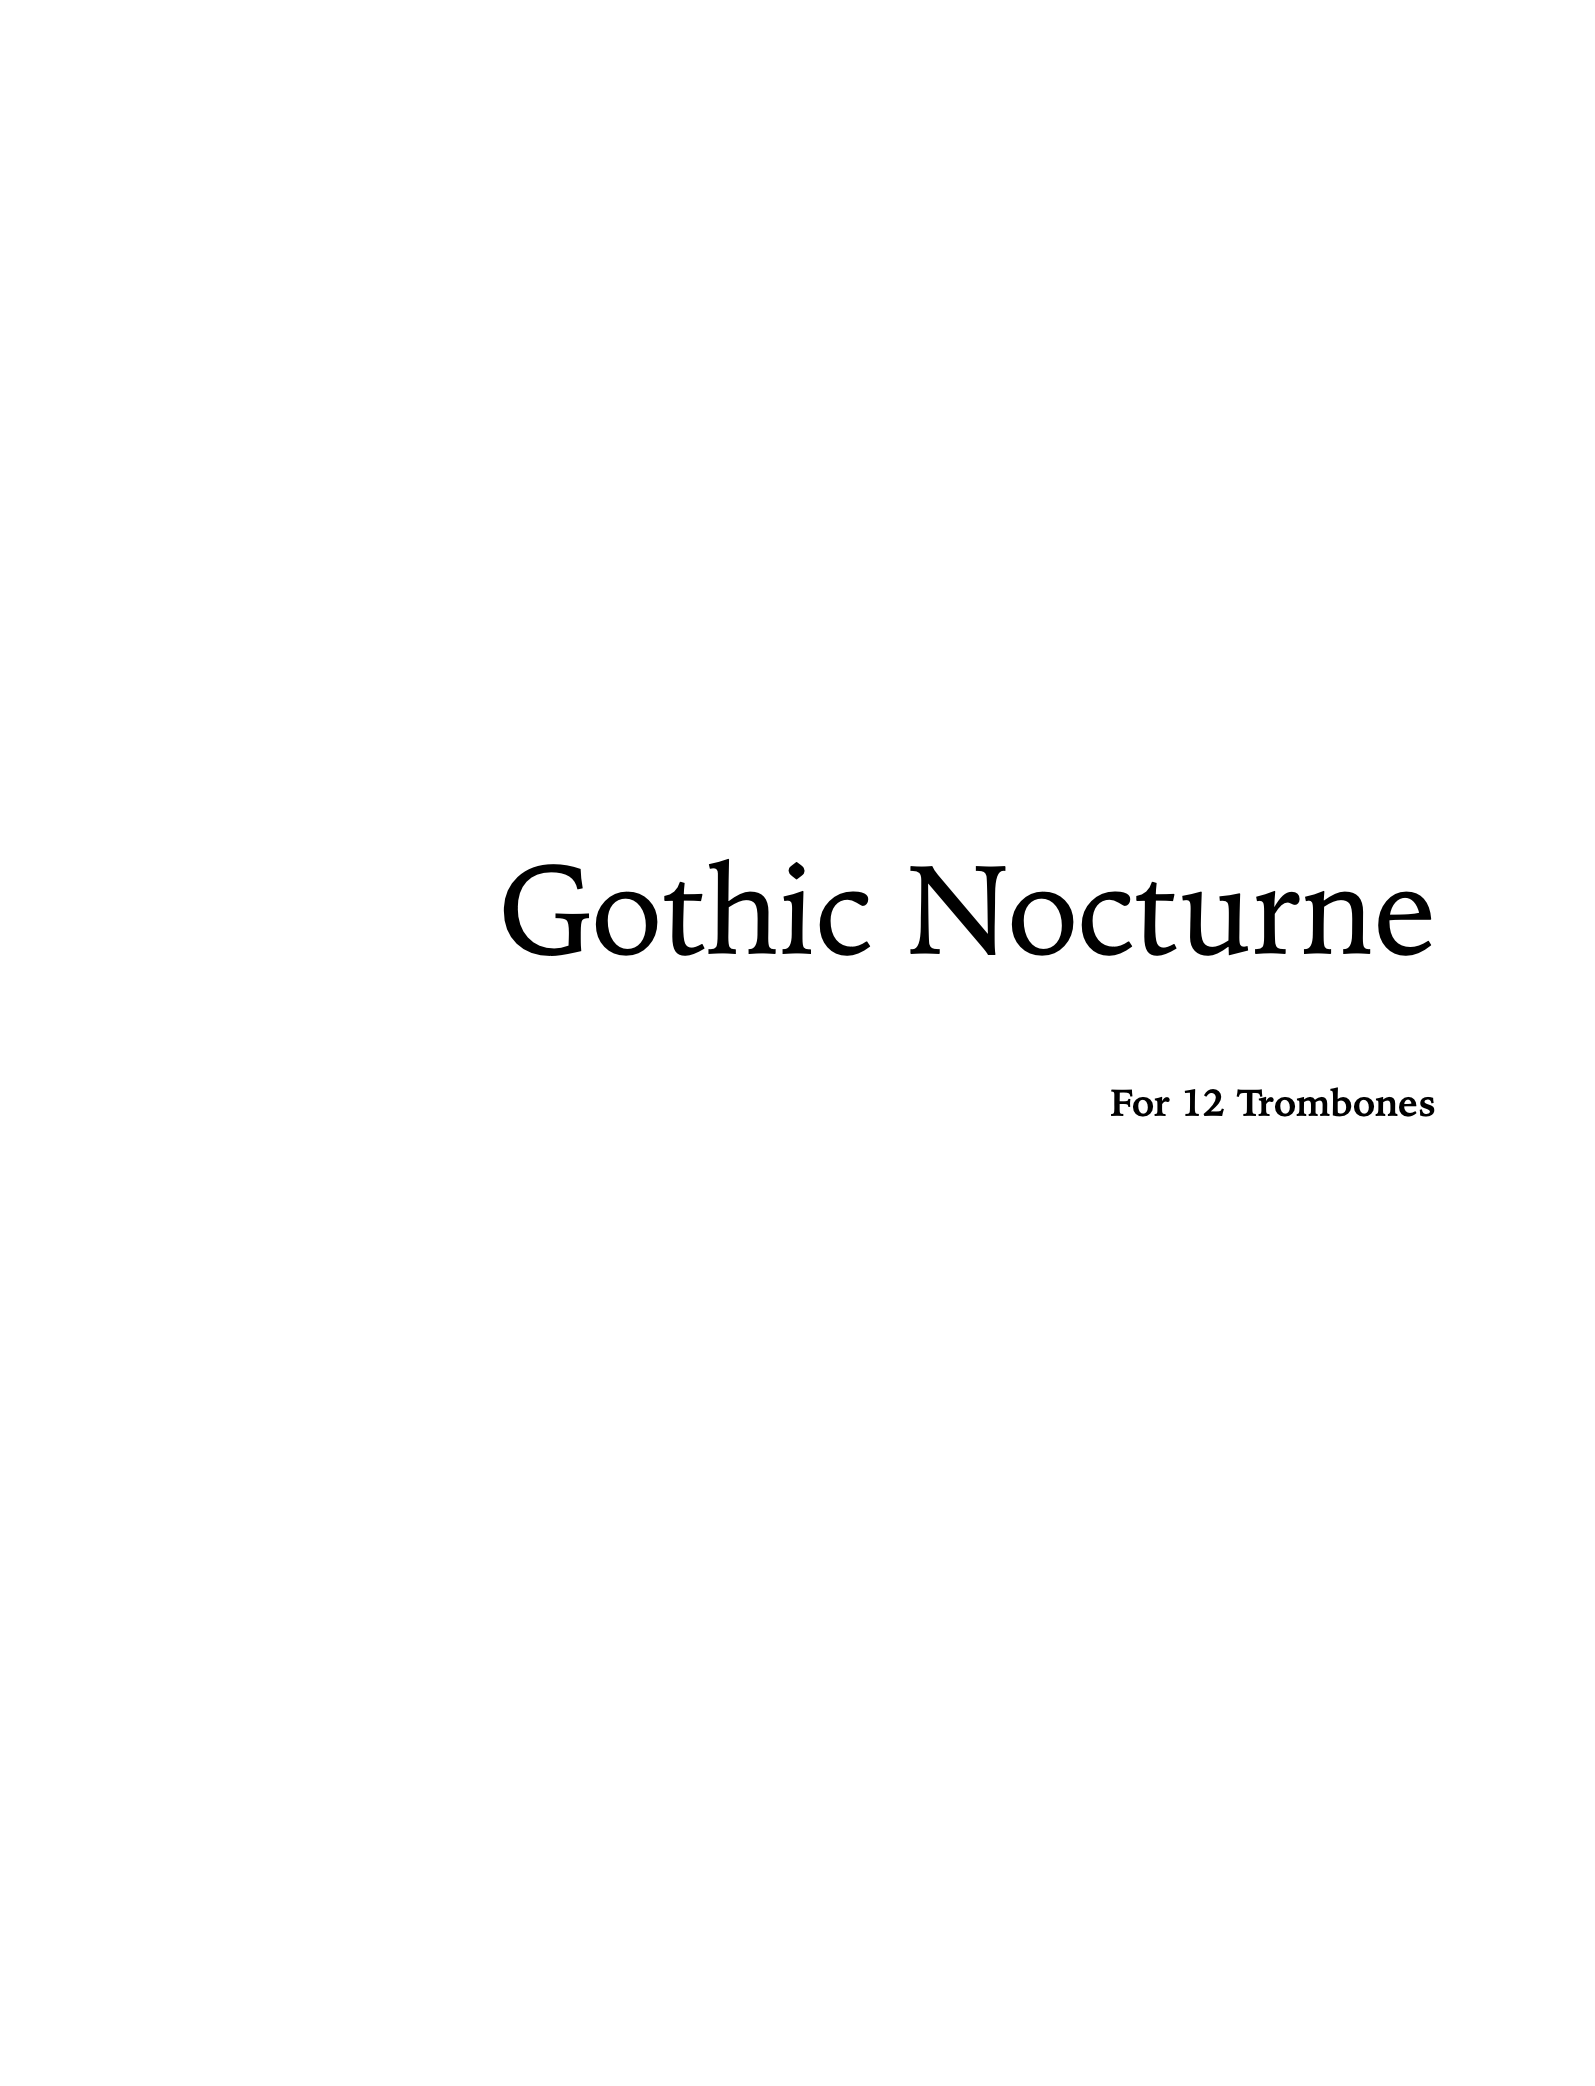 Gothic Nocture by Jack Wilds